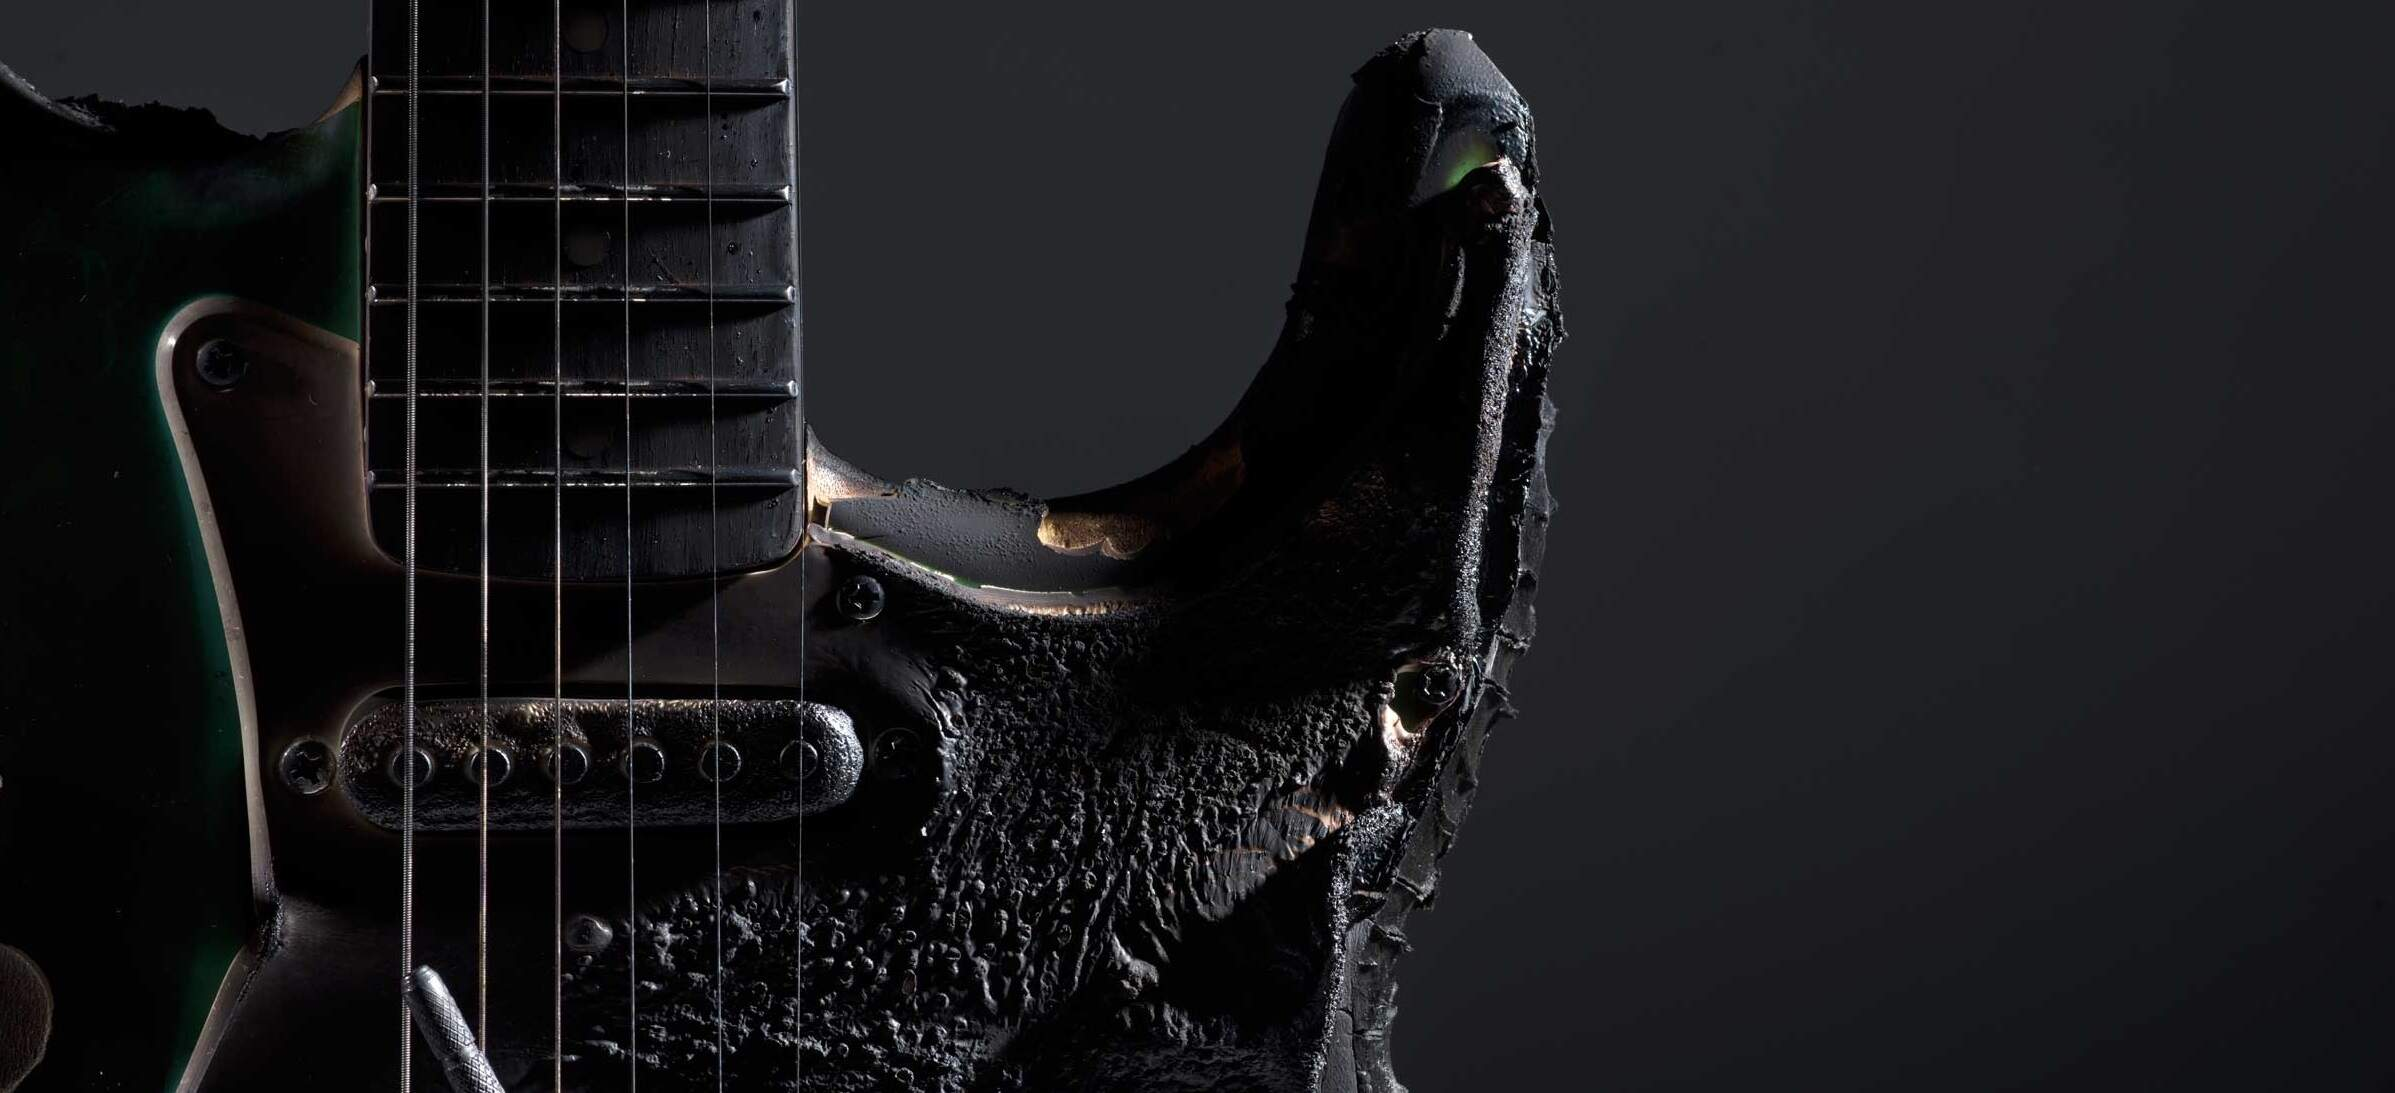 Guitarra carbonizada